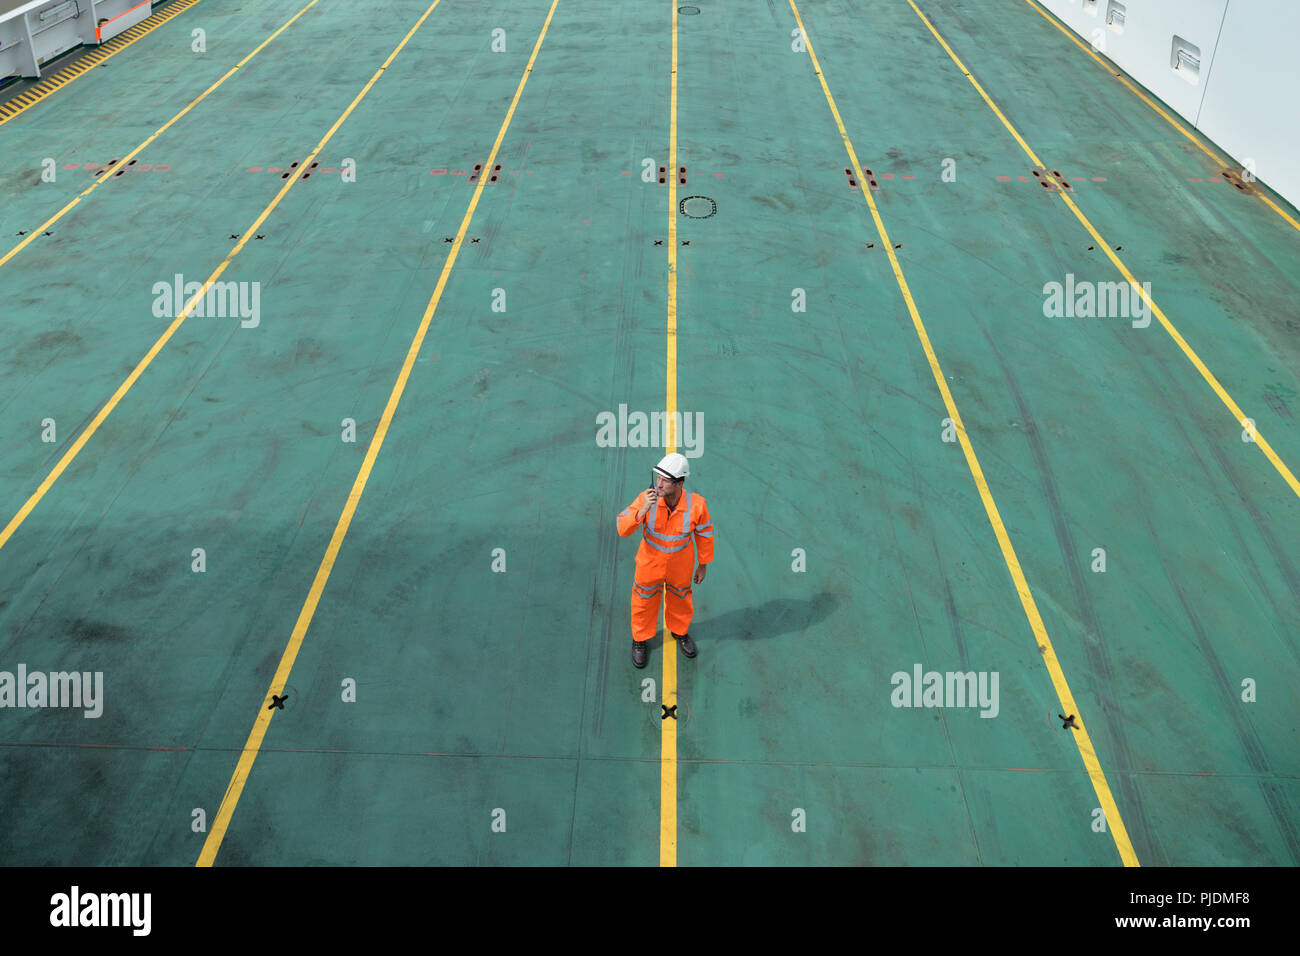 Ship's worker using walkie talkie on deck of ship in port - Stock Image